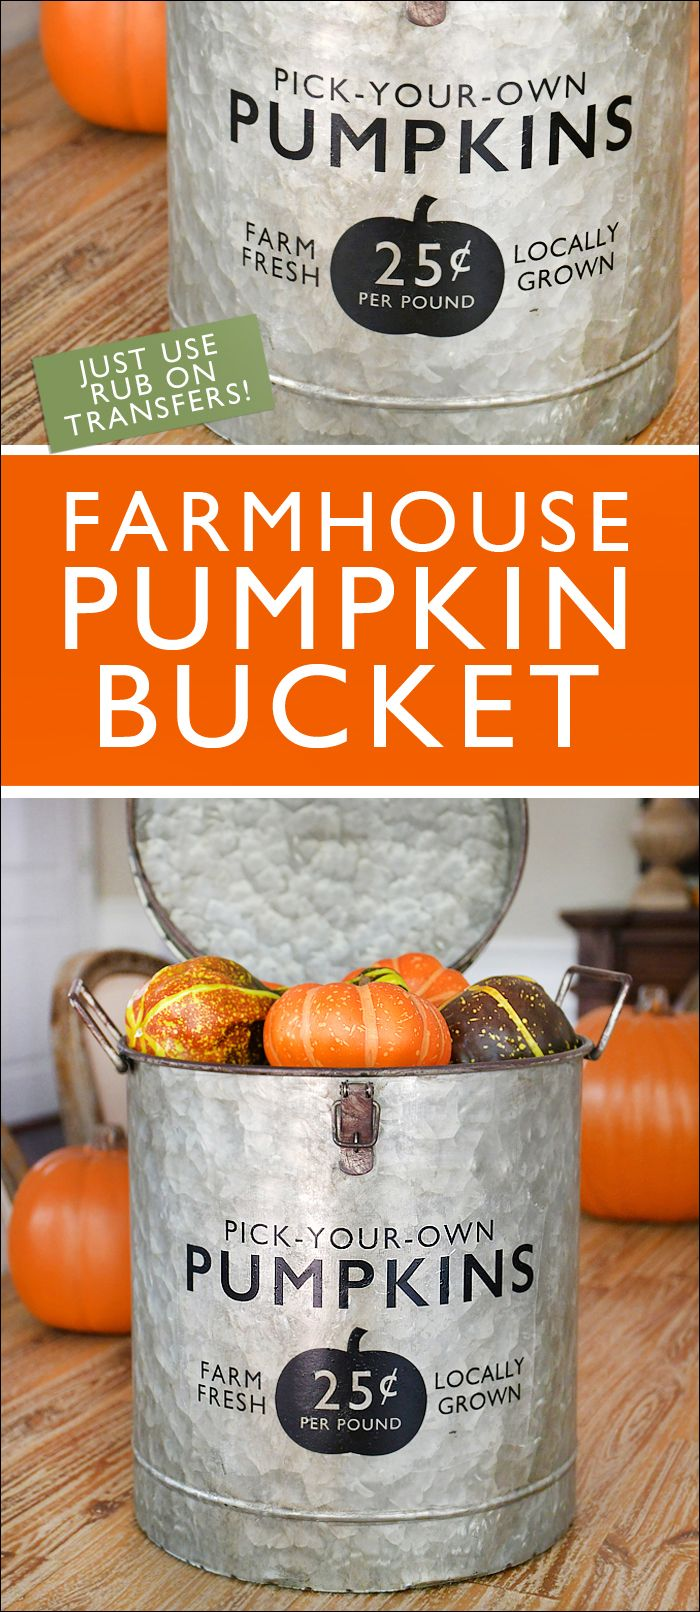 Farmhouse Pumpkin Bucket - easy to do with rub on transfers!! So cute for Fall!!!